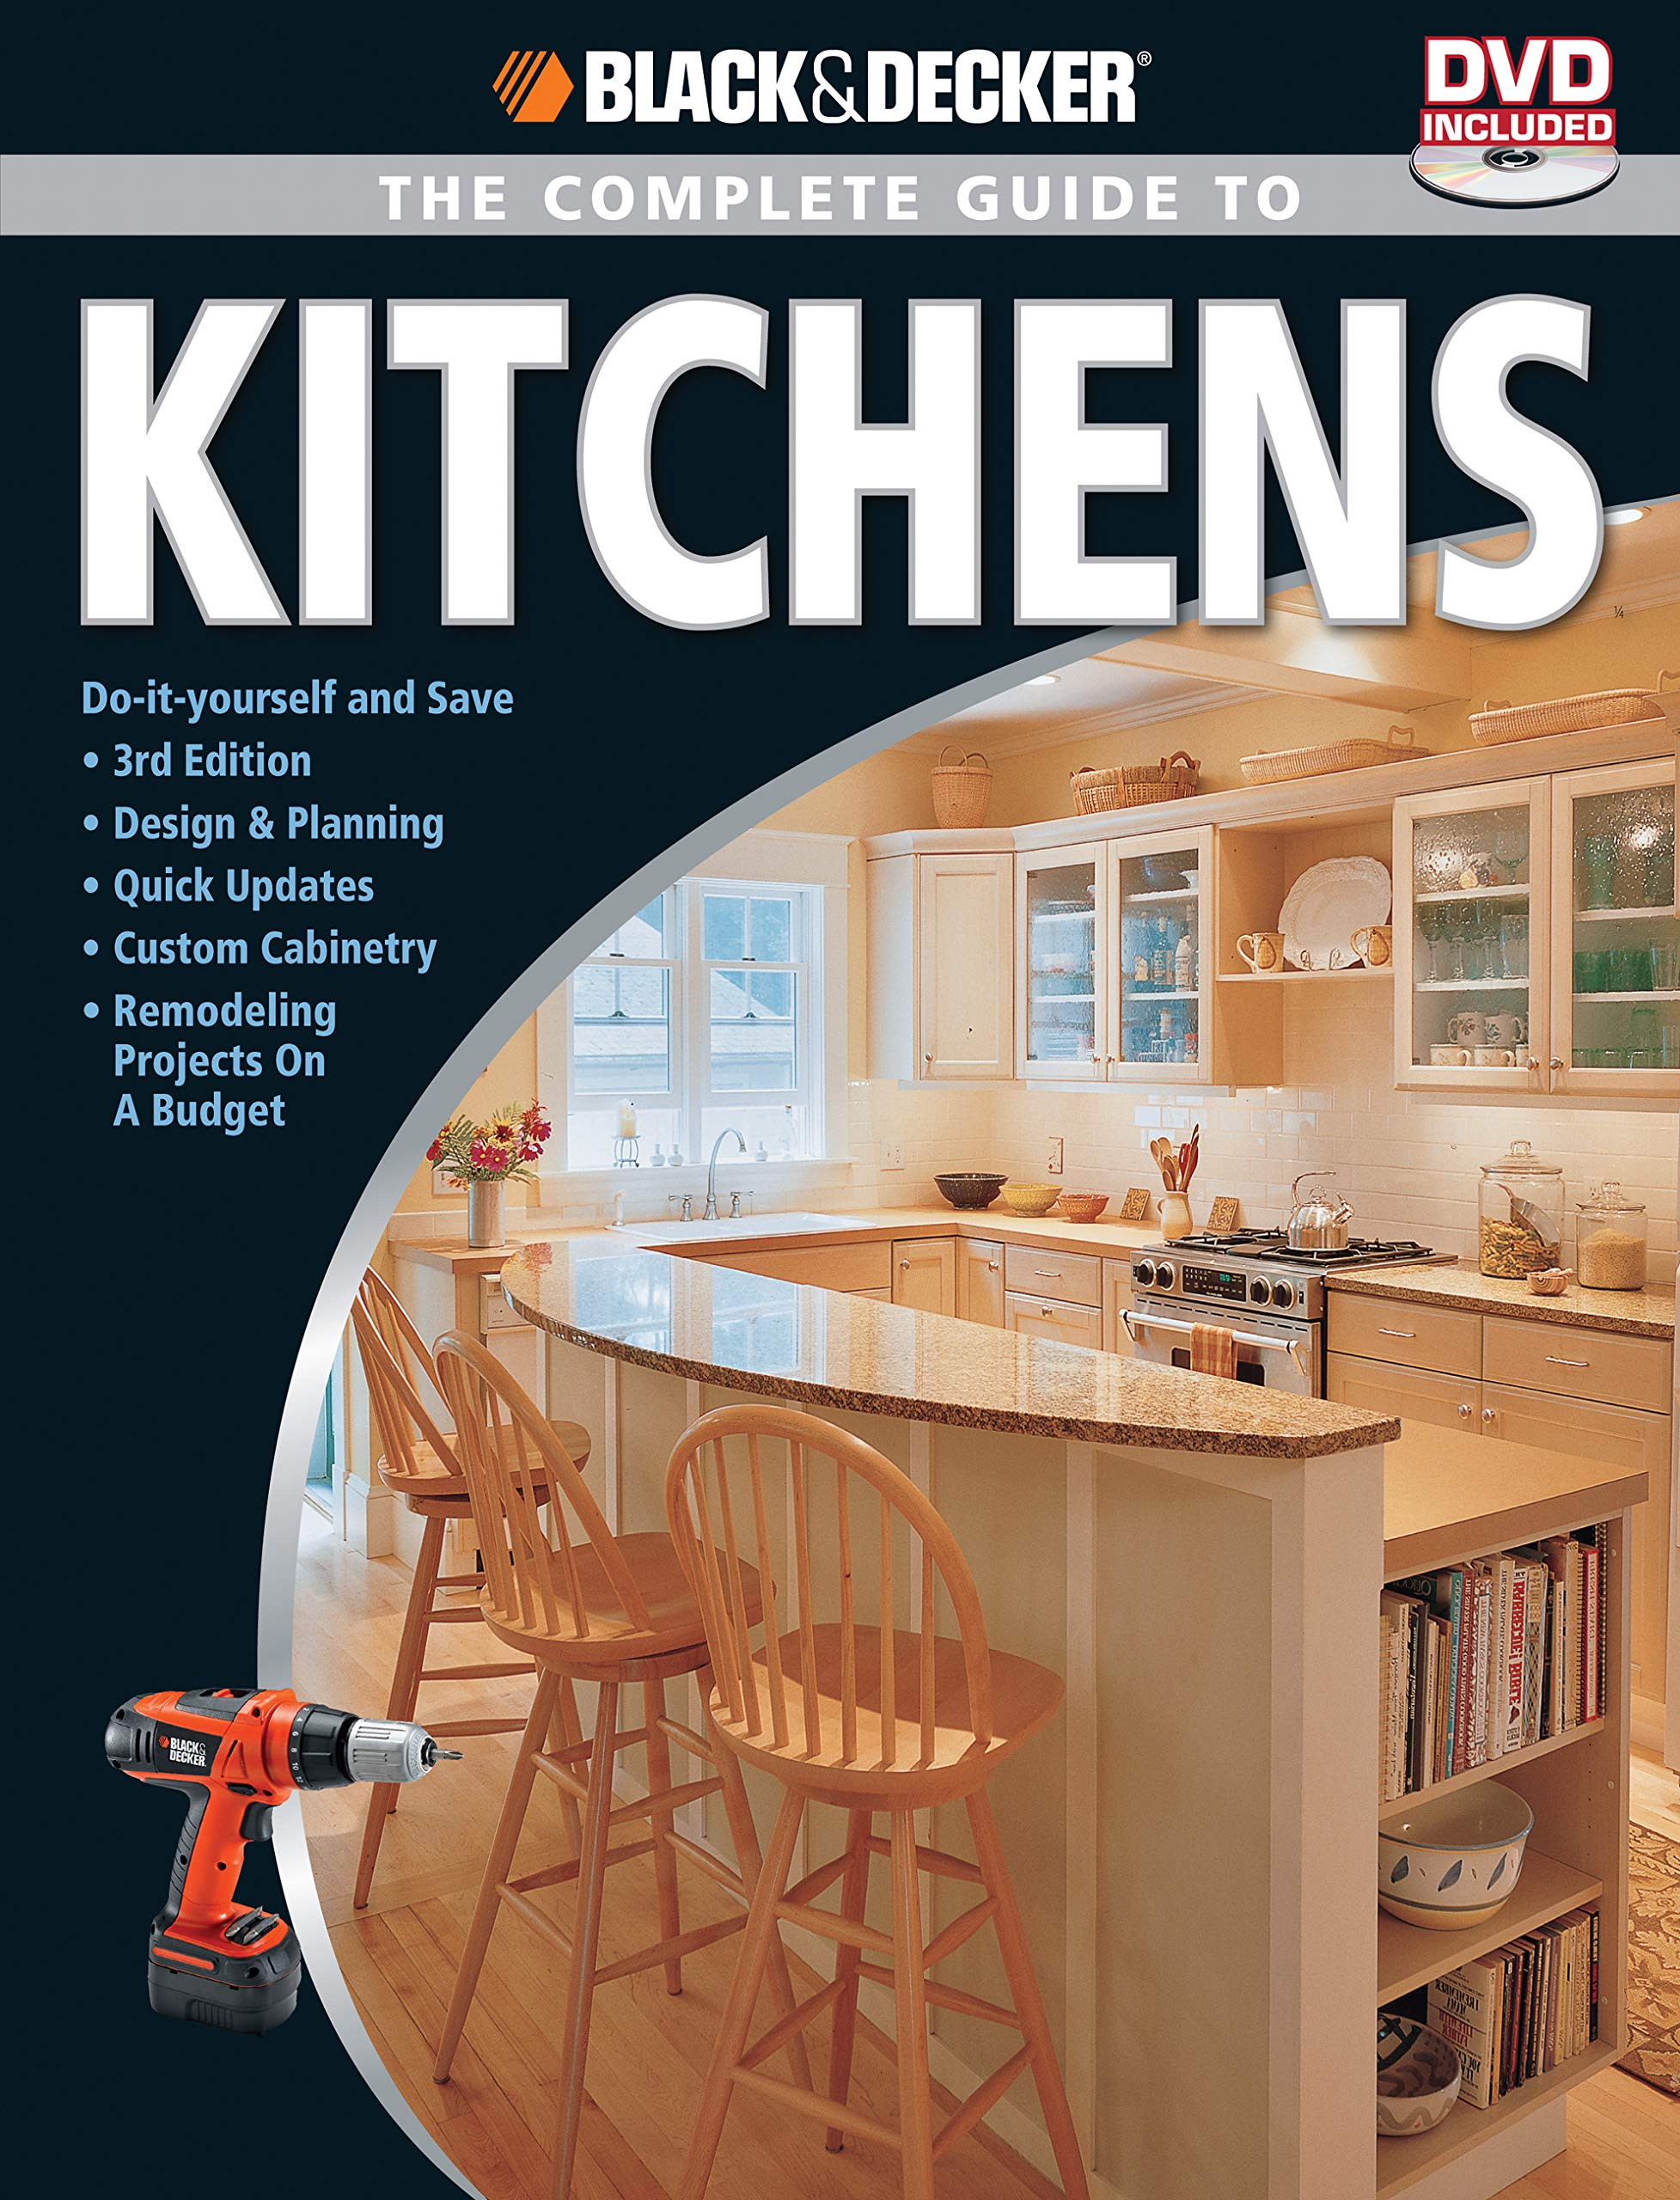 Read Online Black & Decker The Complete Guide to Kitchens: Do-it-yourself and Save  -Third Edition -Design & Planning -Quick Updates -Custom Cabinetry -Remodeling ... on a Budget (Black & Decker Complete Guide) PDF